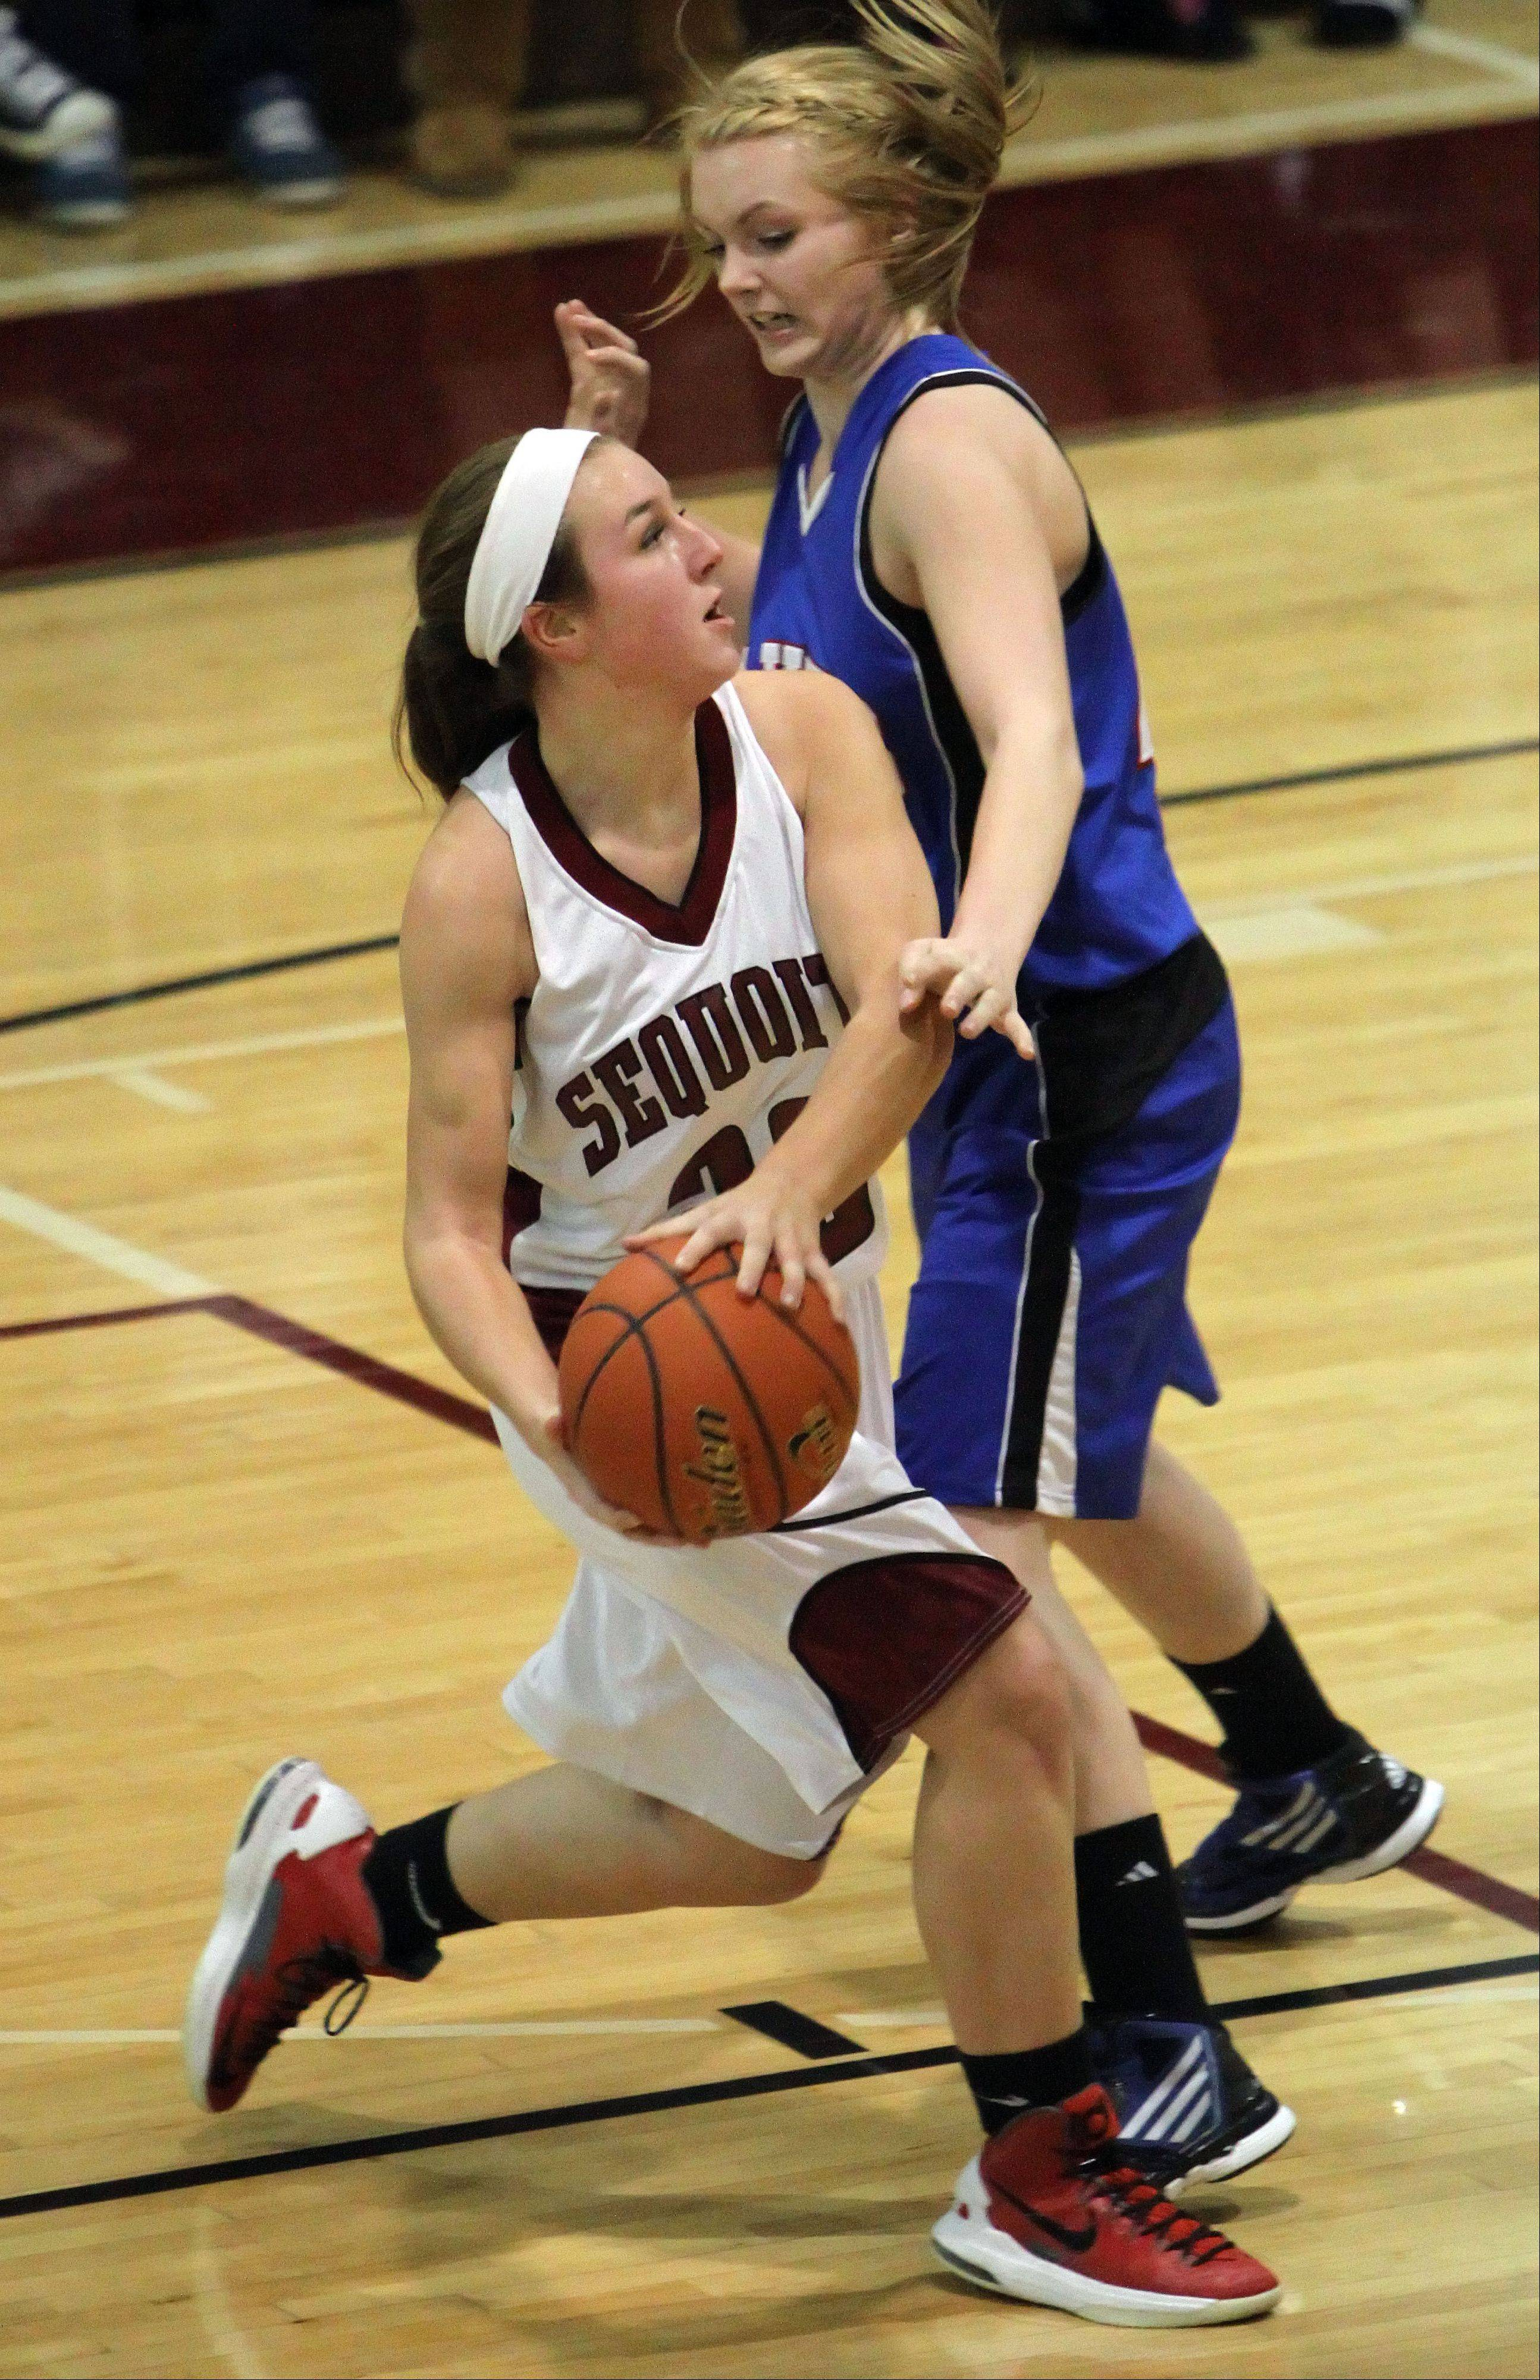 Steve Lundy/slundy@dailyherald.com ¬ Antioch's Paige Gallimore, left drives on Lakes' Amanda Beetschen last seasaon. Gallimore returns for her third varsity season.